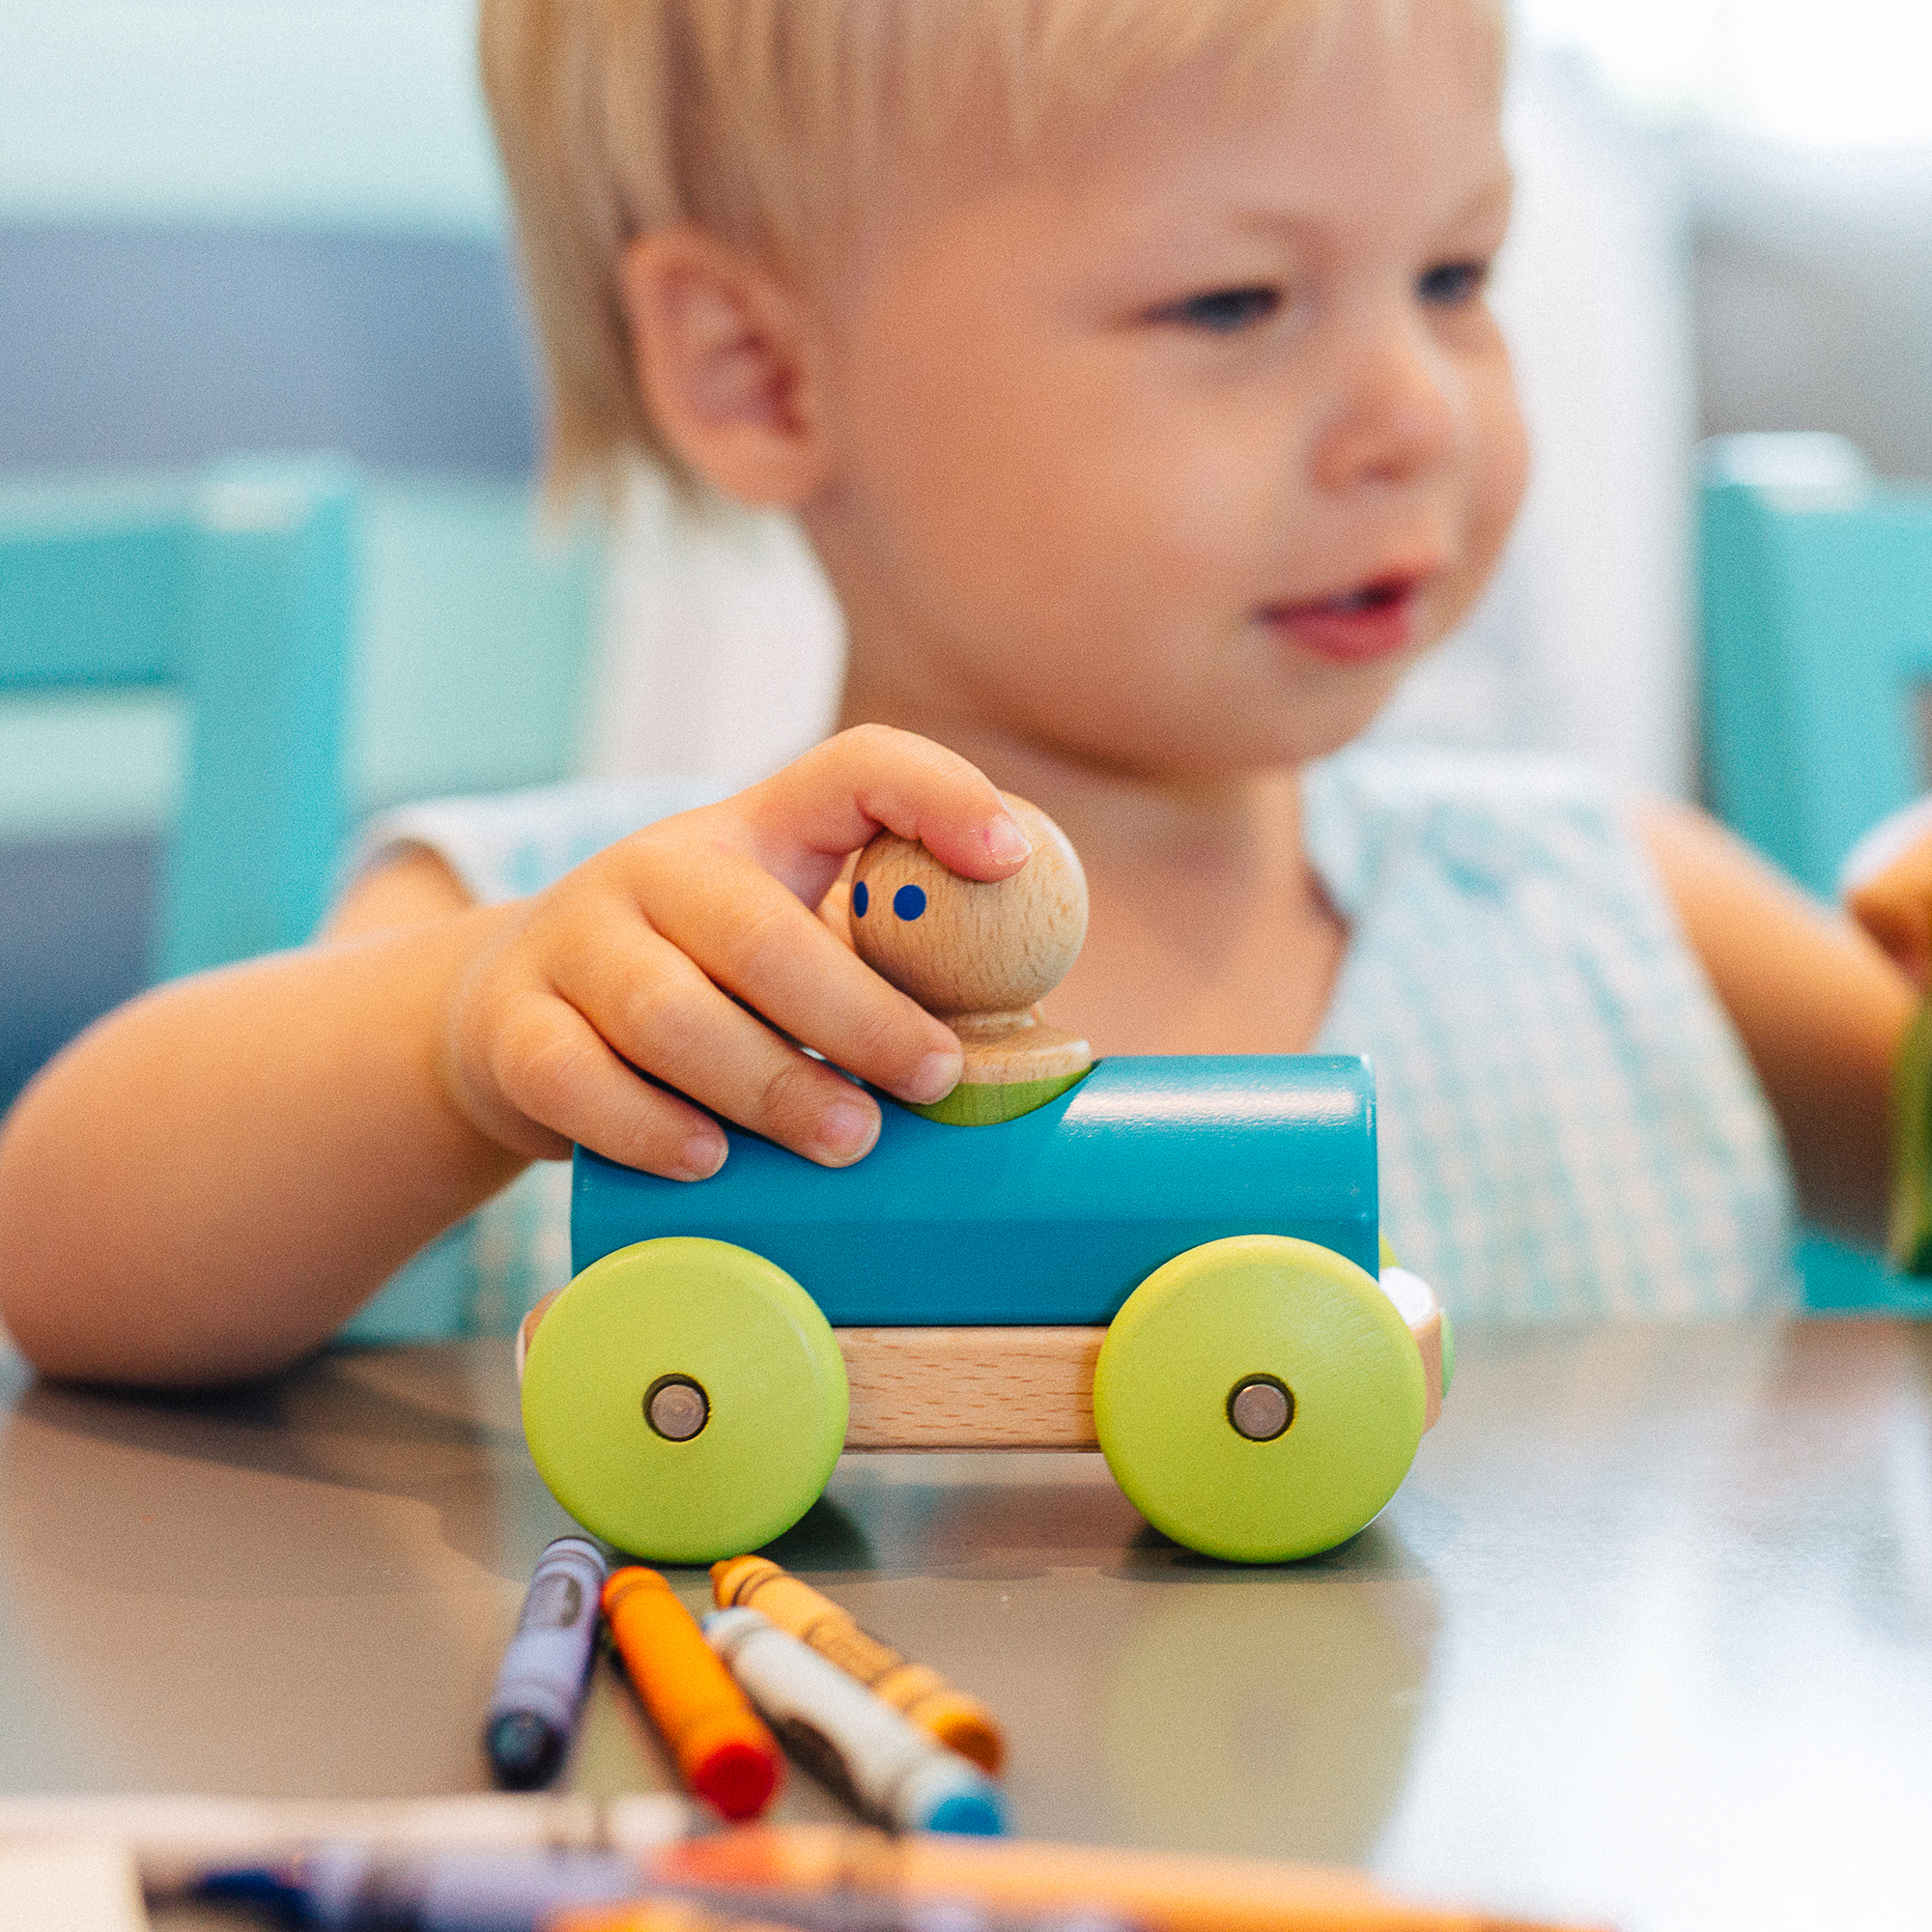 Tegu - Magnetic Toys - BRAND NEW TEGU TODDLER RANGE NOW IN STOCK!Tegu secretly hide their magnets inside wooden blocks, an essential open ended resource for any family<<< Click on image to view our full range